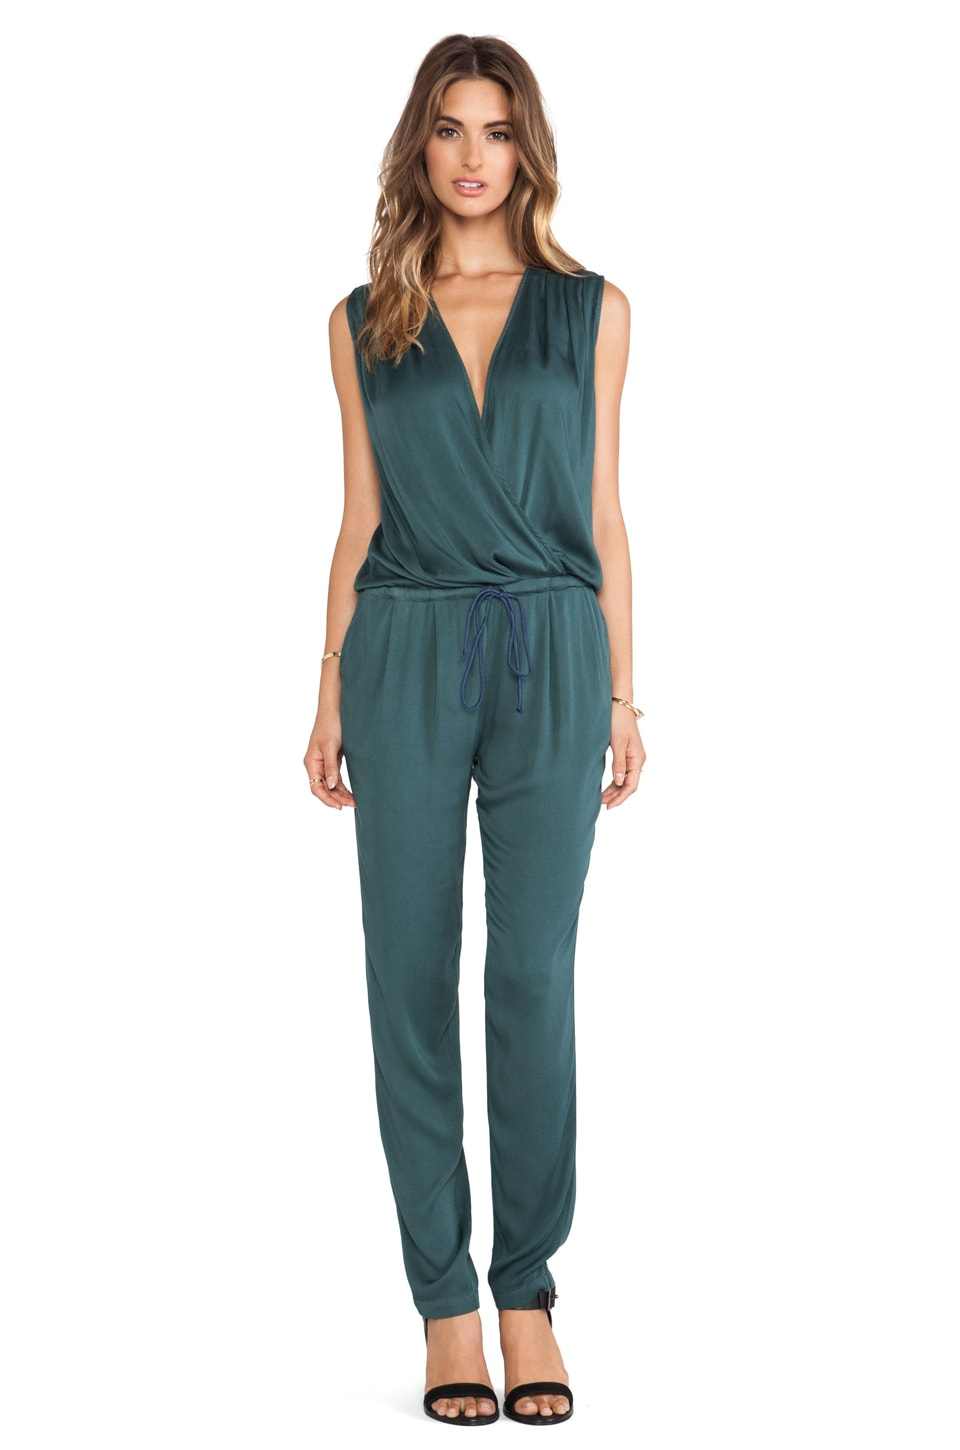 Kain Heidi Jumpsuit in Evergreen